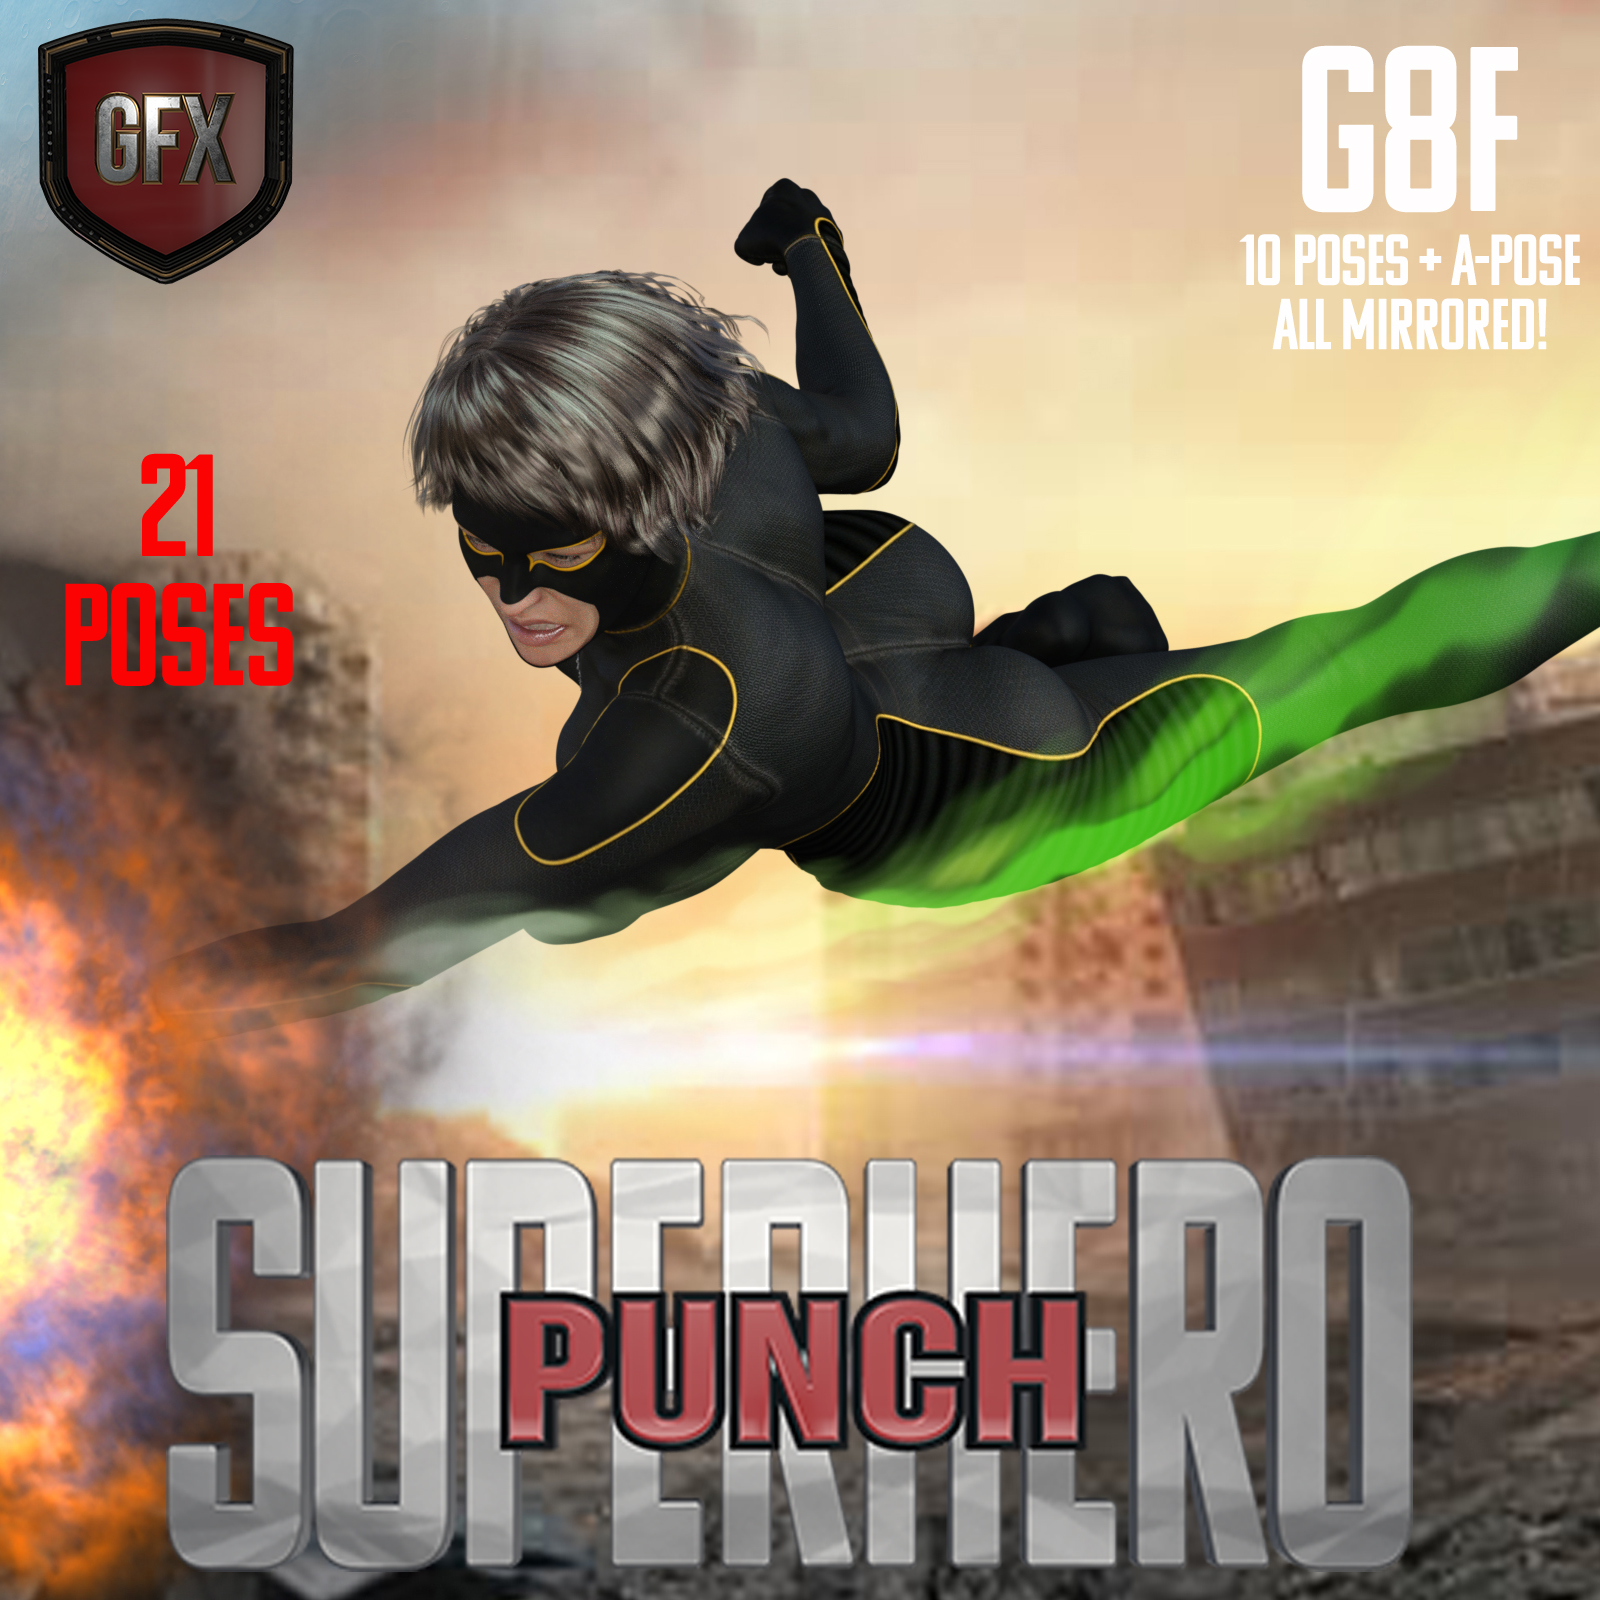 SuperHero Punch for G8F Volume 1 by GriffinFX